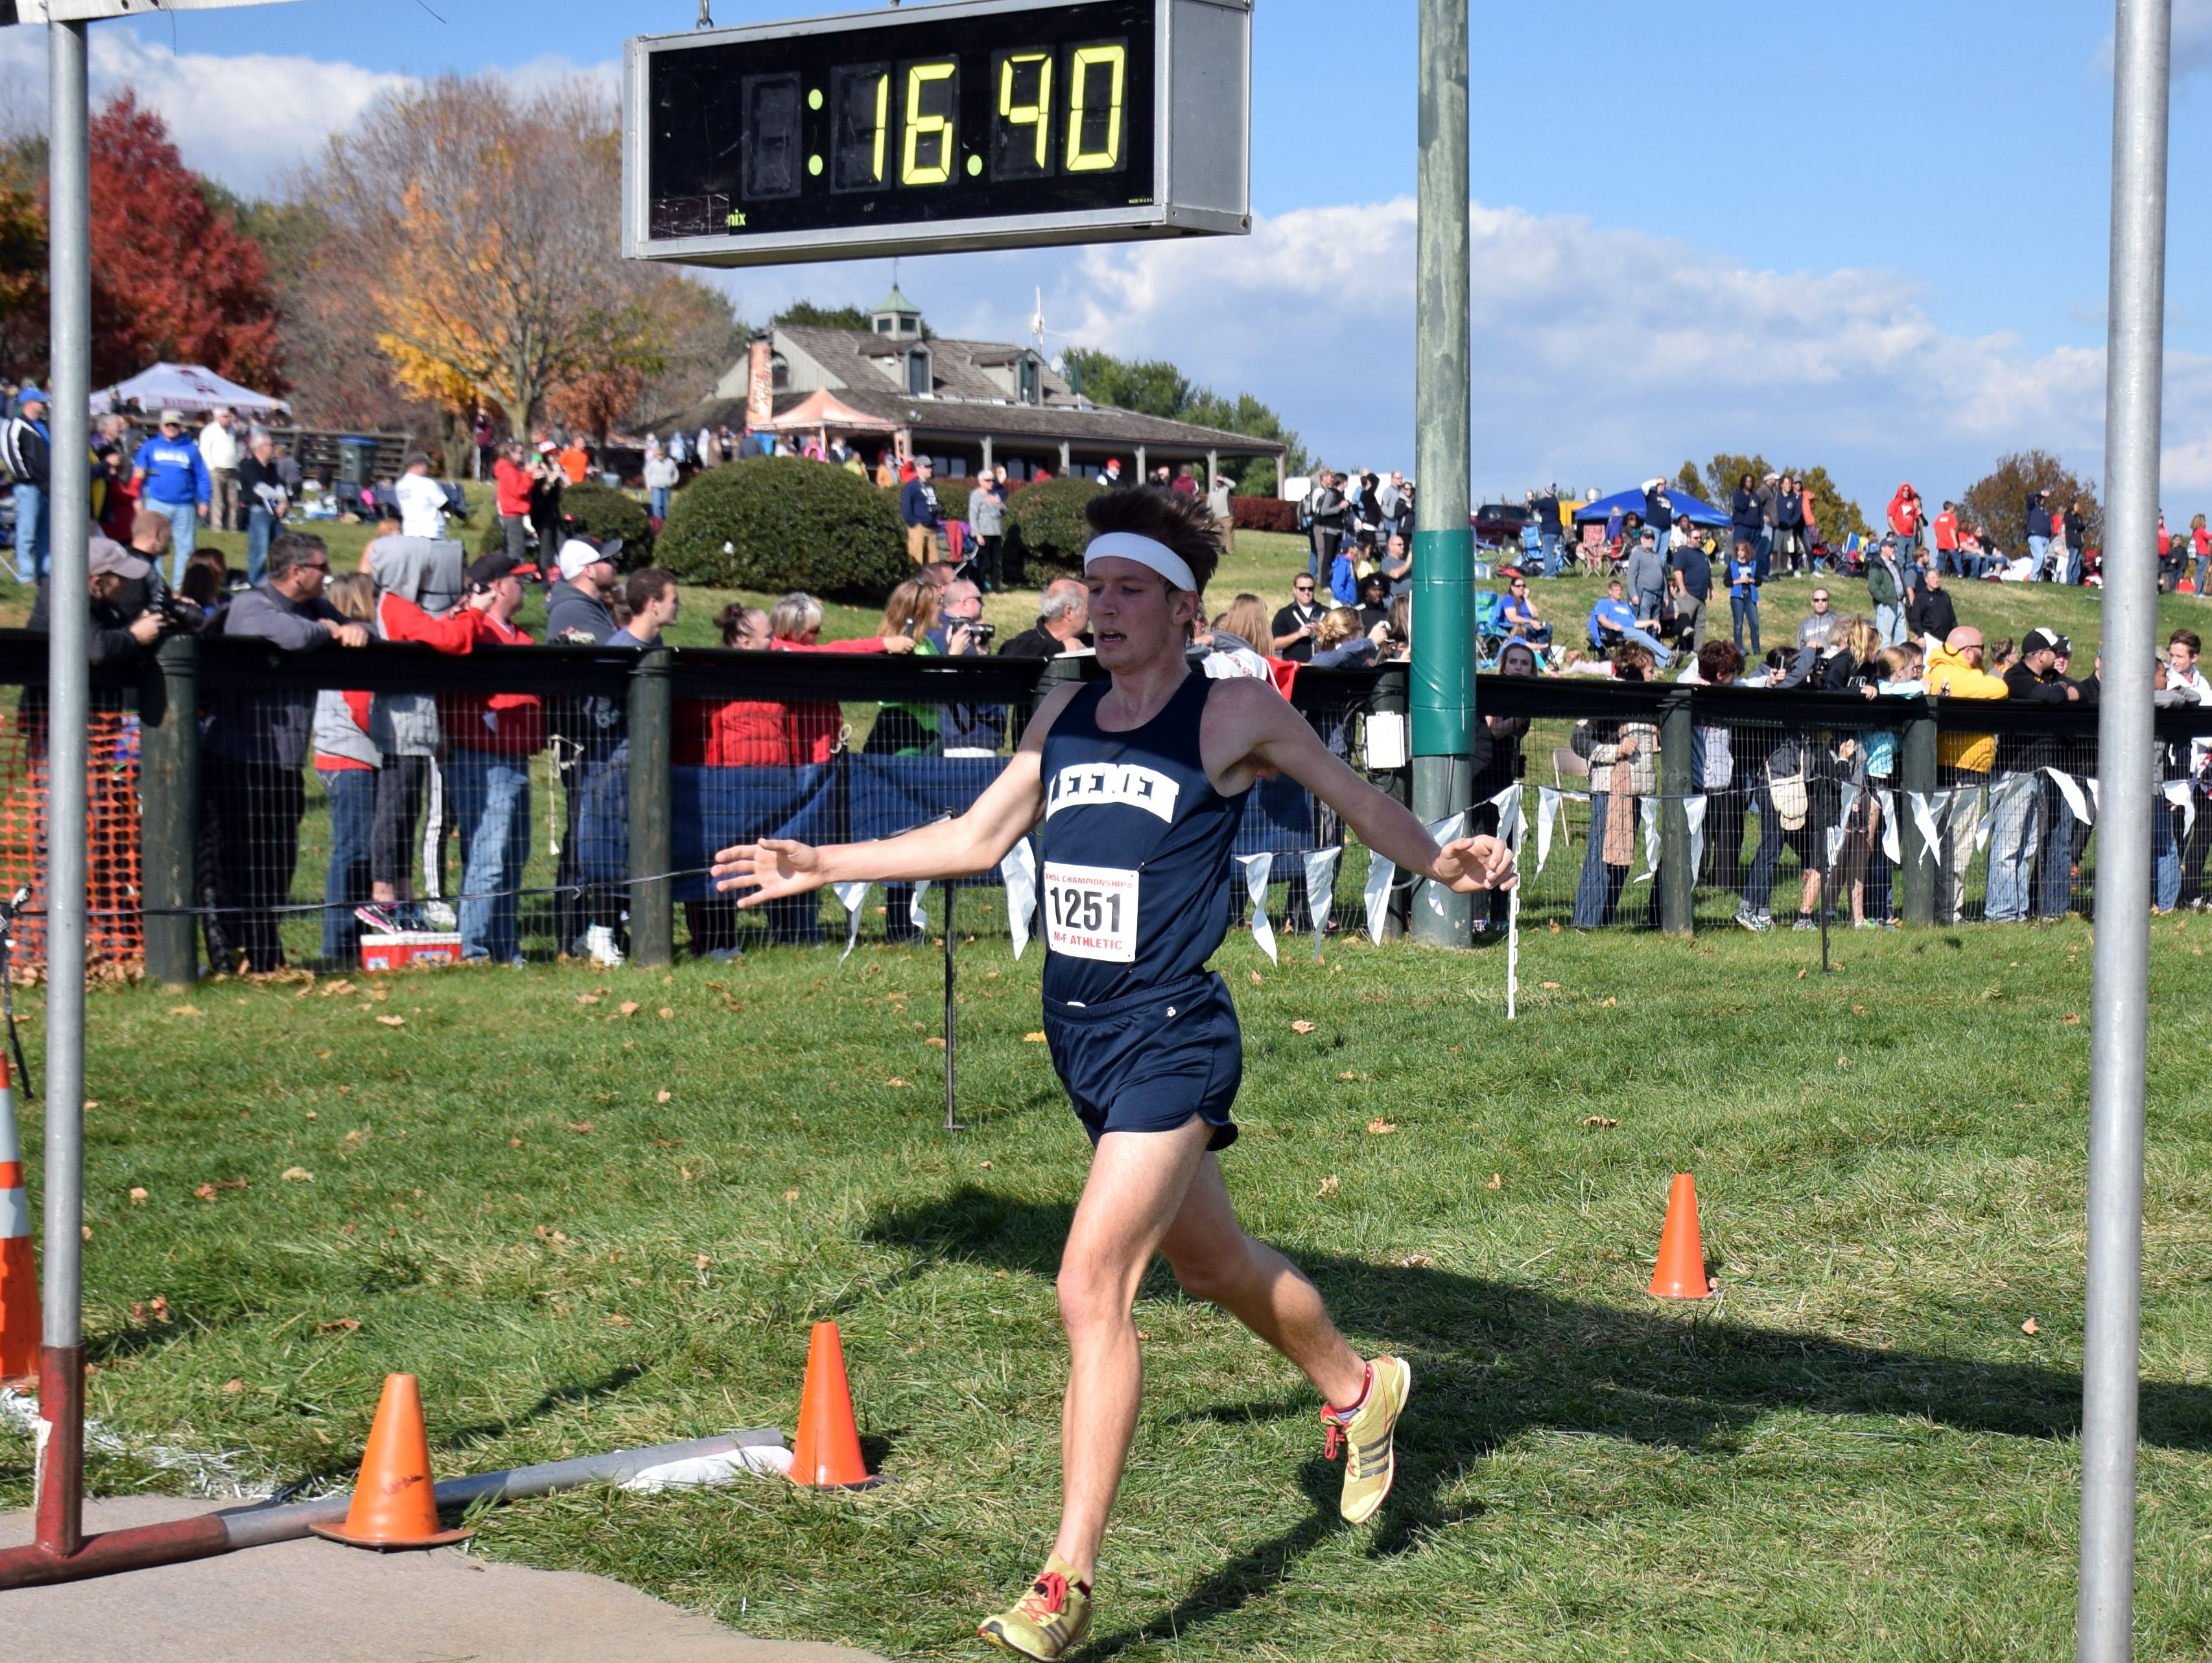 Robert E. Lee's Jacob Warner crosses the finish line of the Group 2A boys race at the VHSL cross country championships at Great Meadow in The Plains on Friday, Nov. 11, 2016.